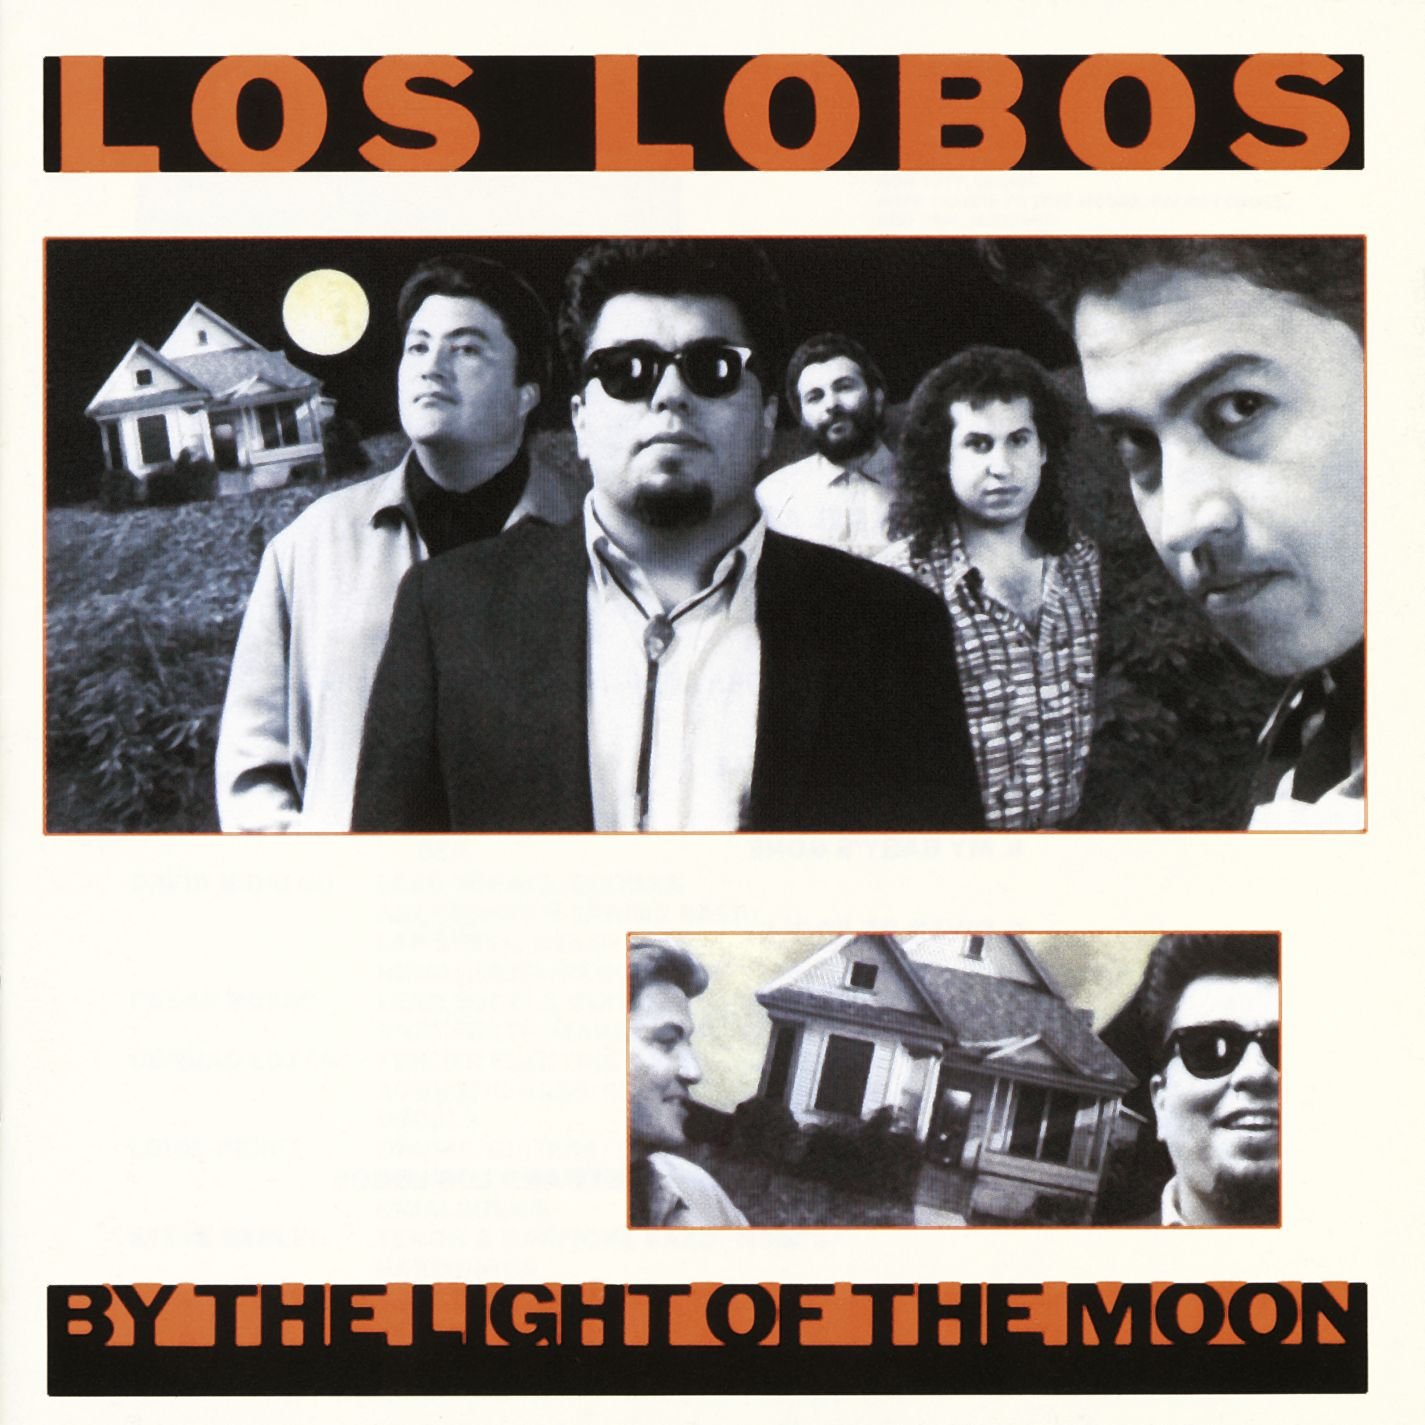 Los Lobos - By The Light Of The Moon - Amazon.com Music